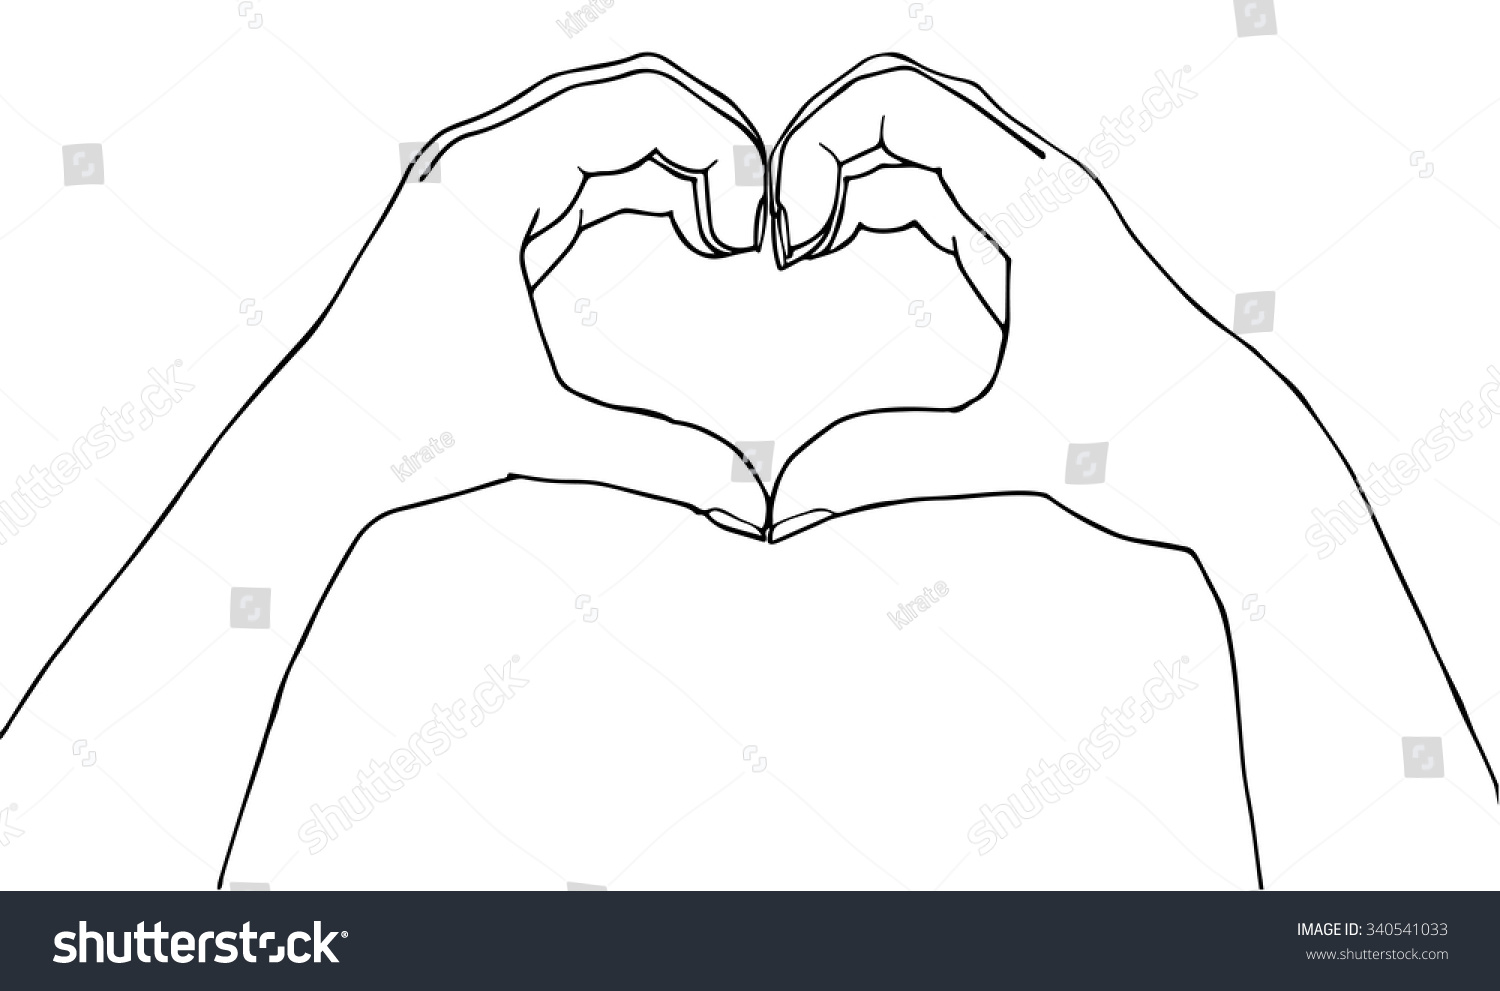 Uncategorized Heart Hands Drawing heart hands making shape stock vector 340541033 a illustration outline isolated on white background